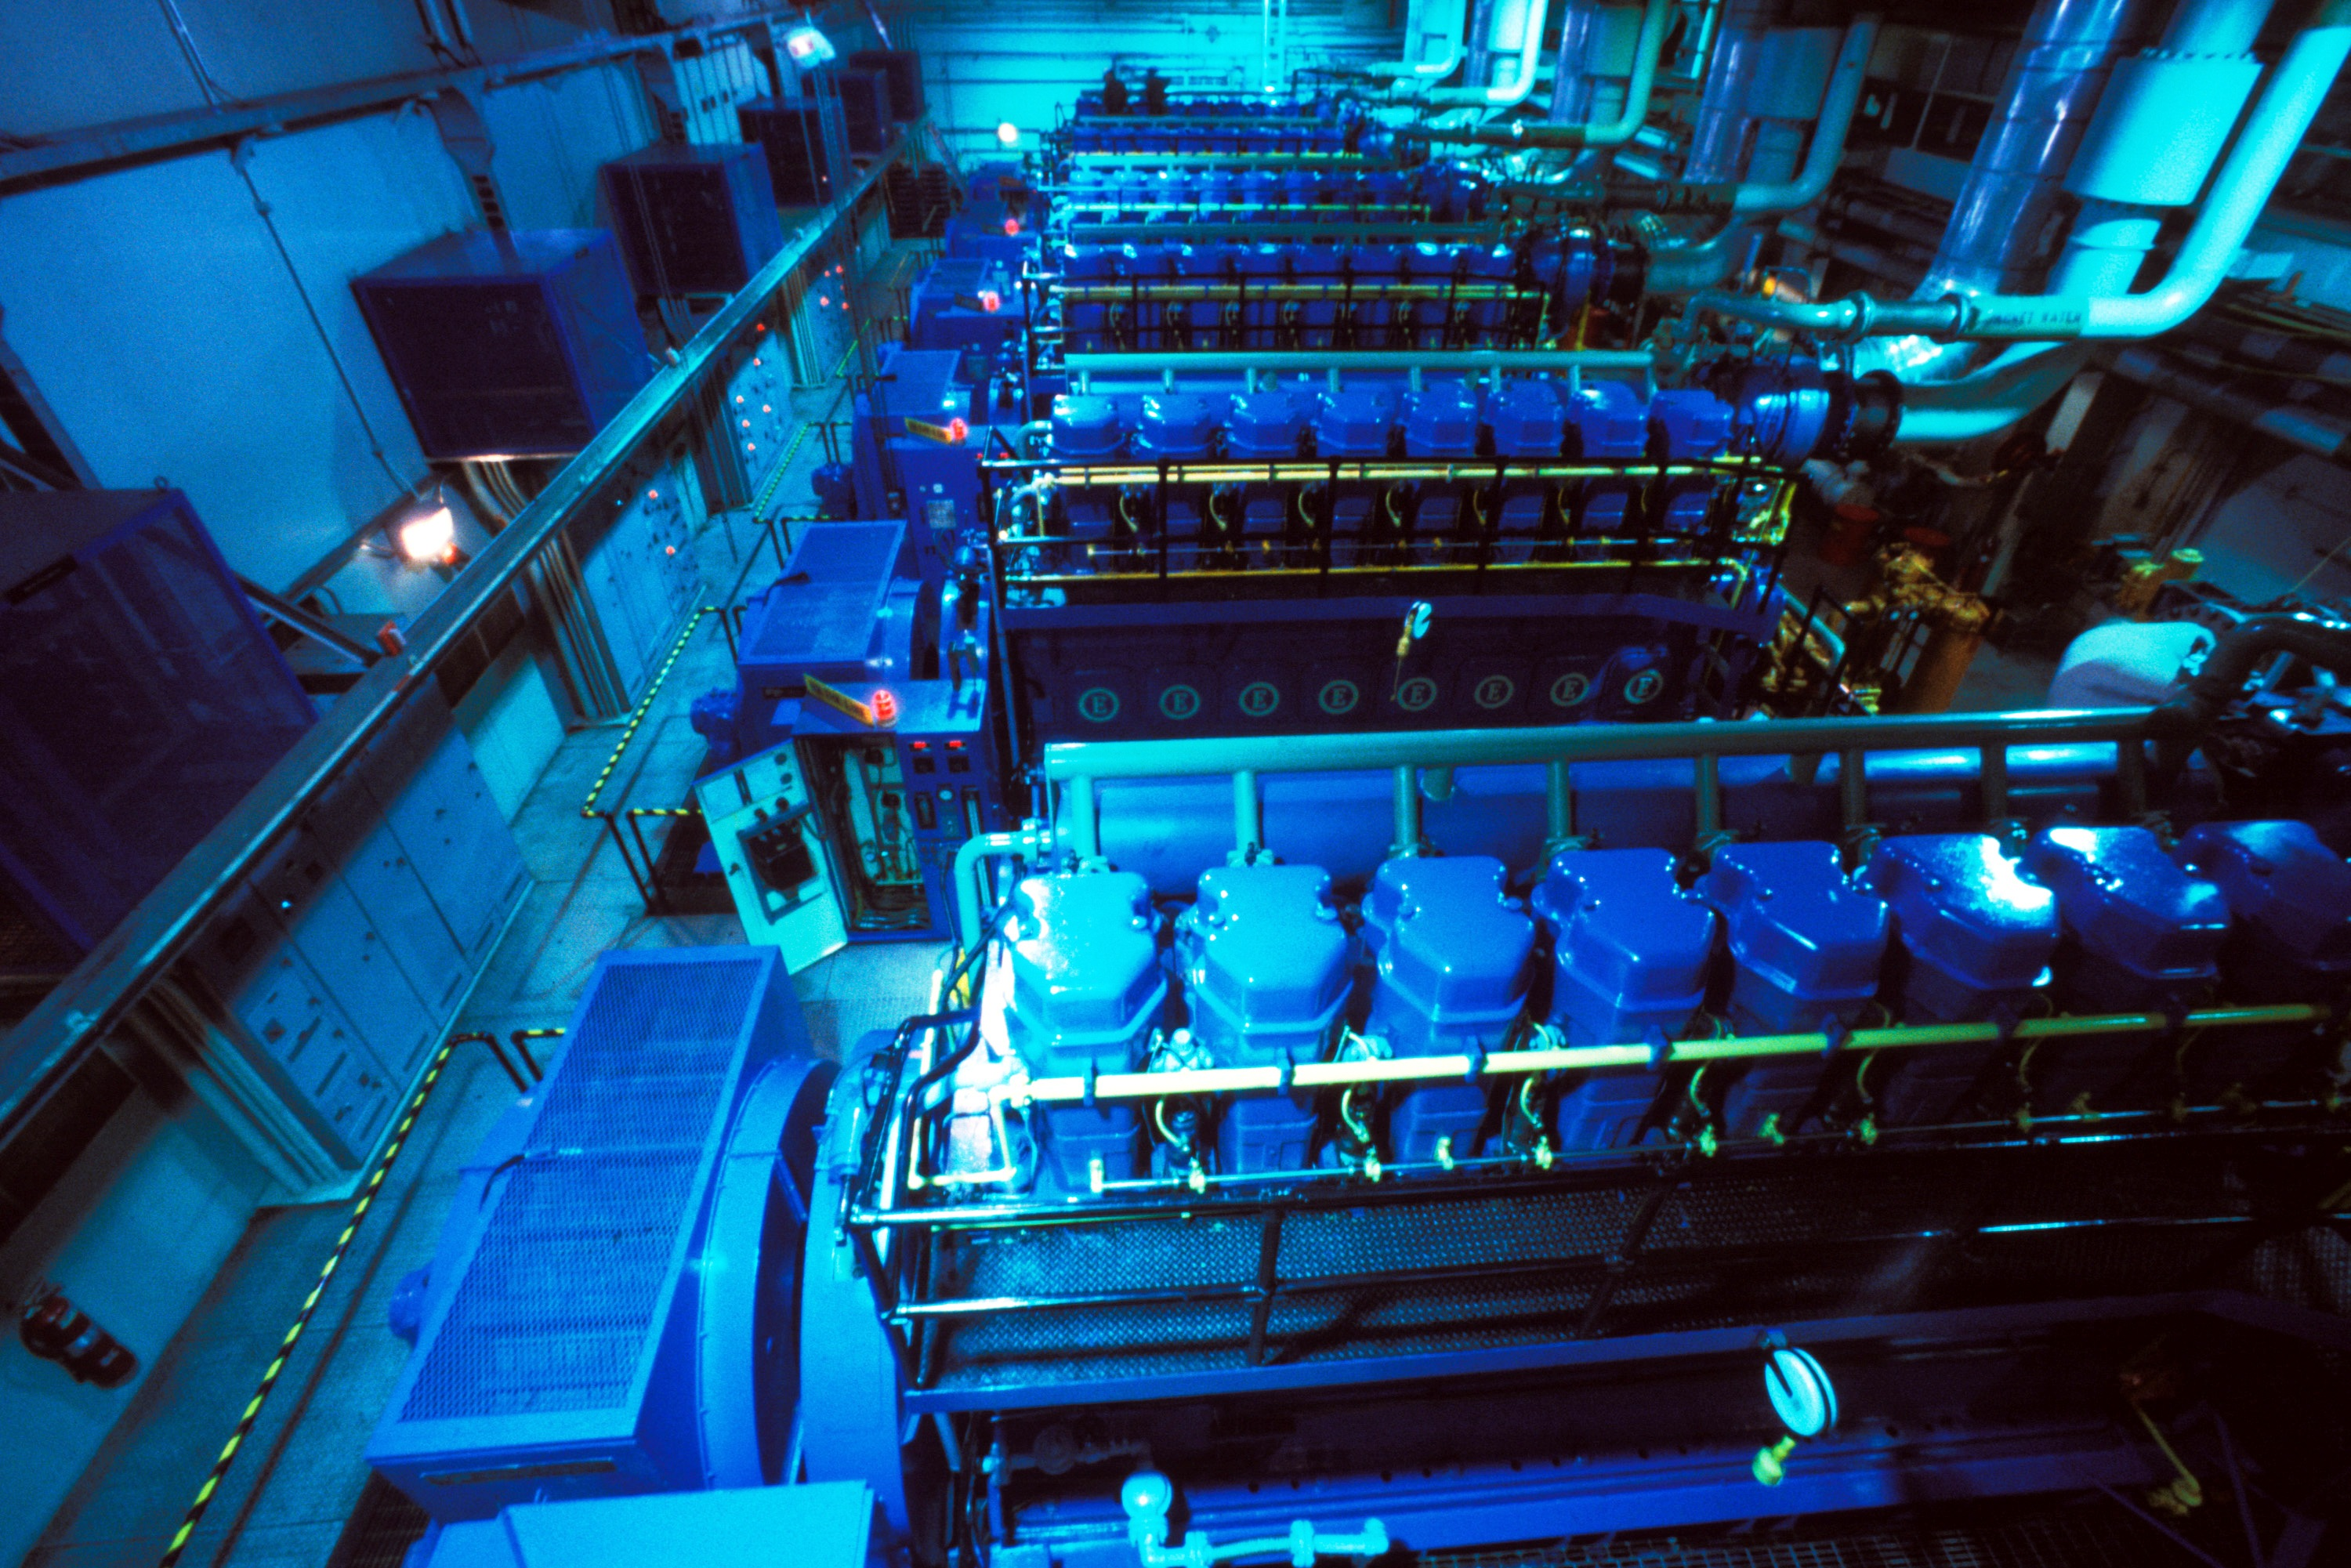 File:Generators inside NORAD.jpg - Wikimedia Commons